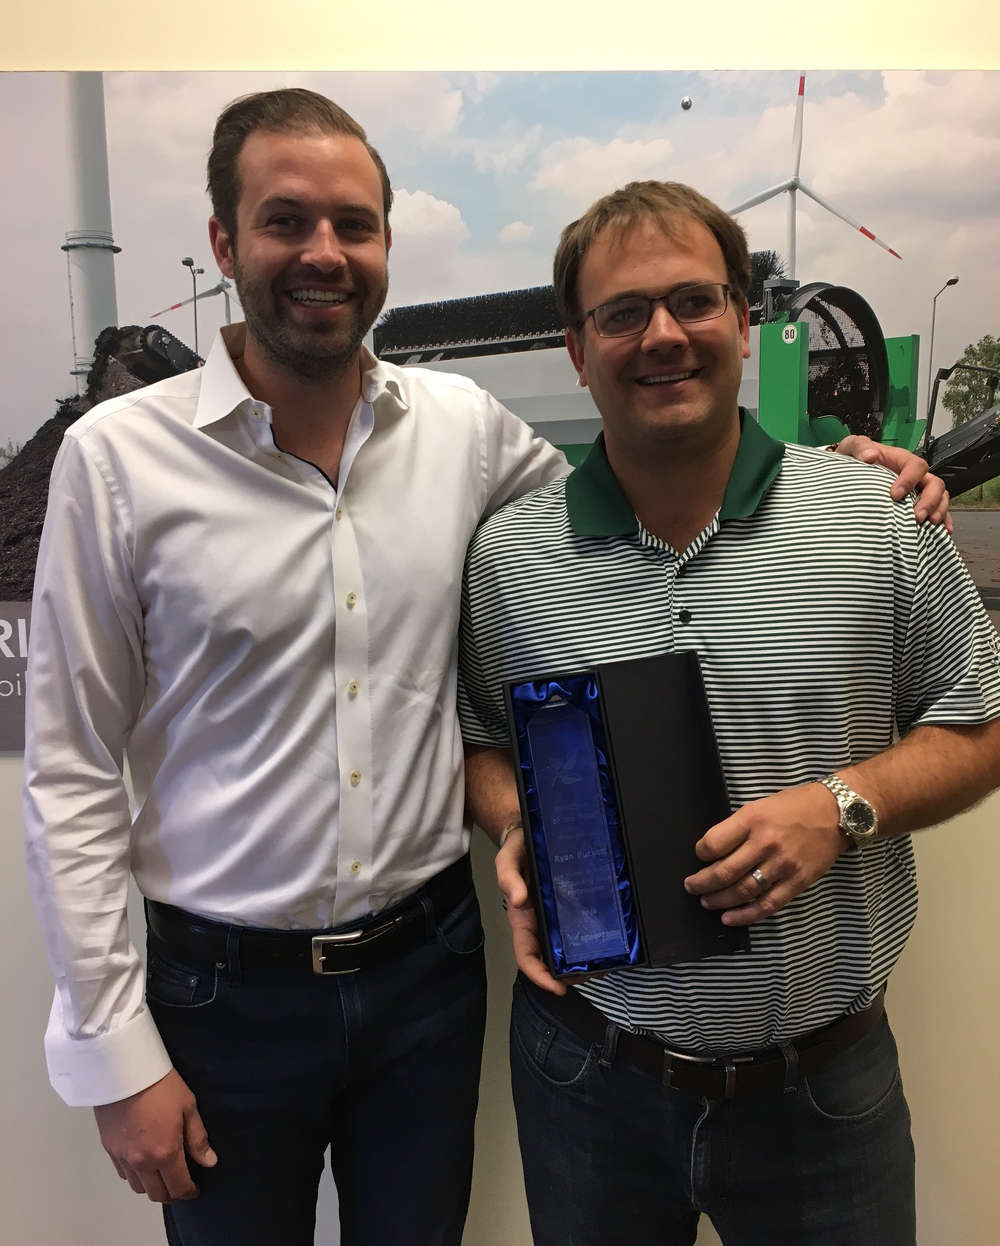 Ryan Puckett (R) from Power Screening, LLC receives the Salesperson of the Year award from Komptech Americas' Brandon Lapsys.